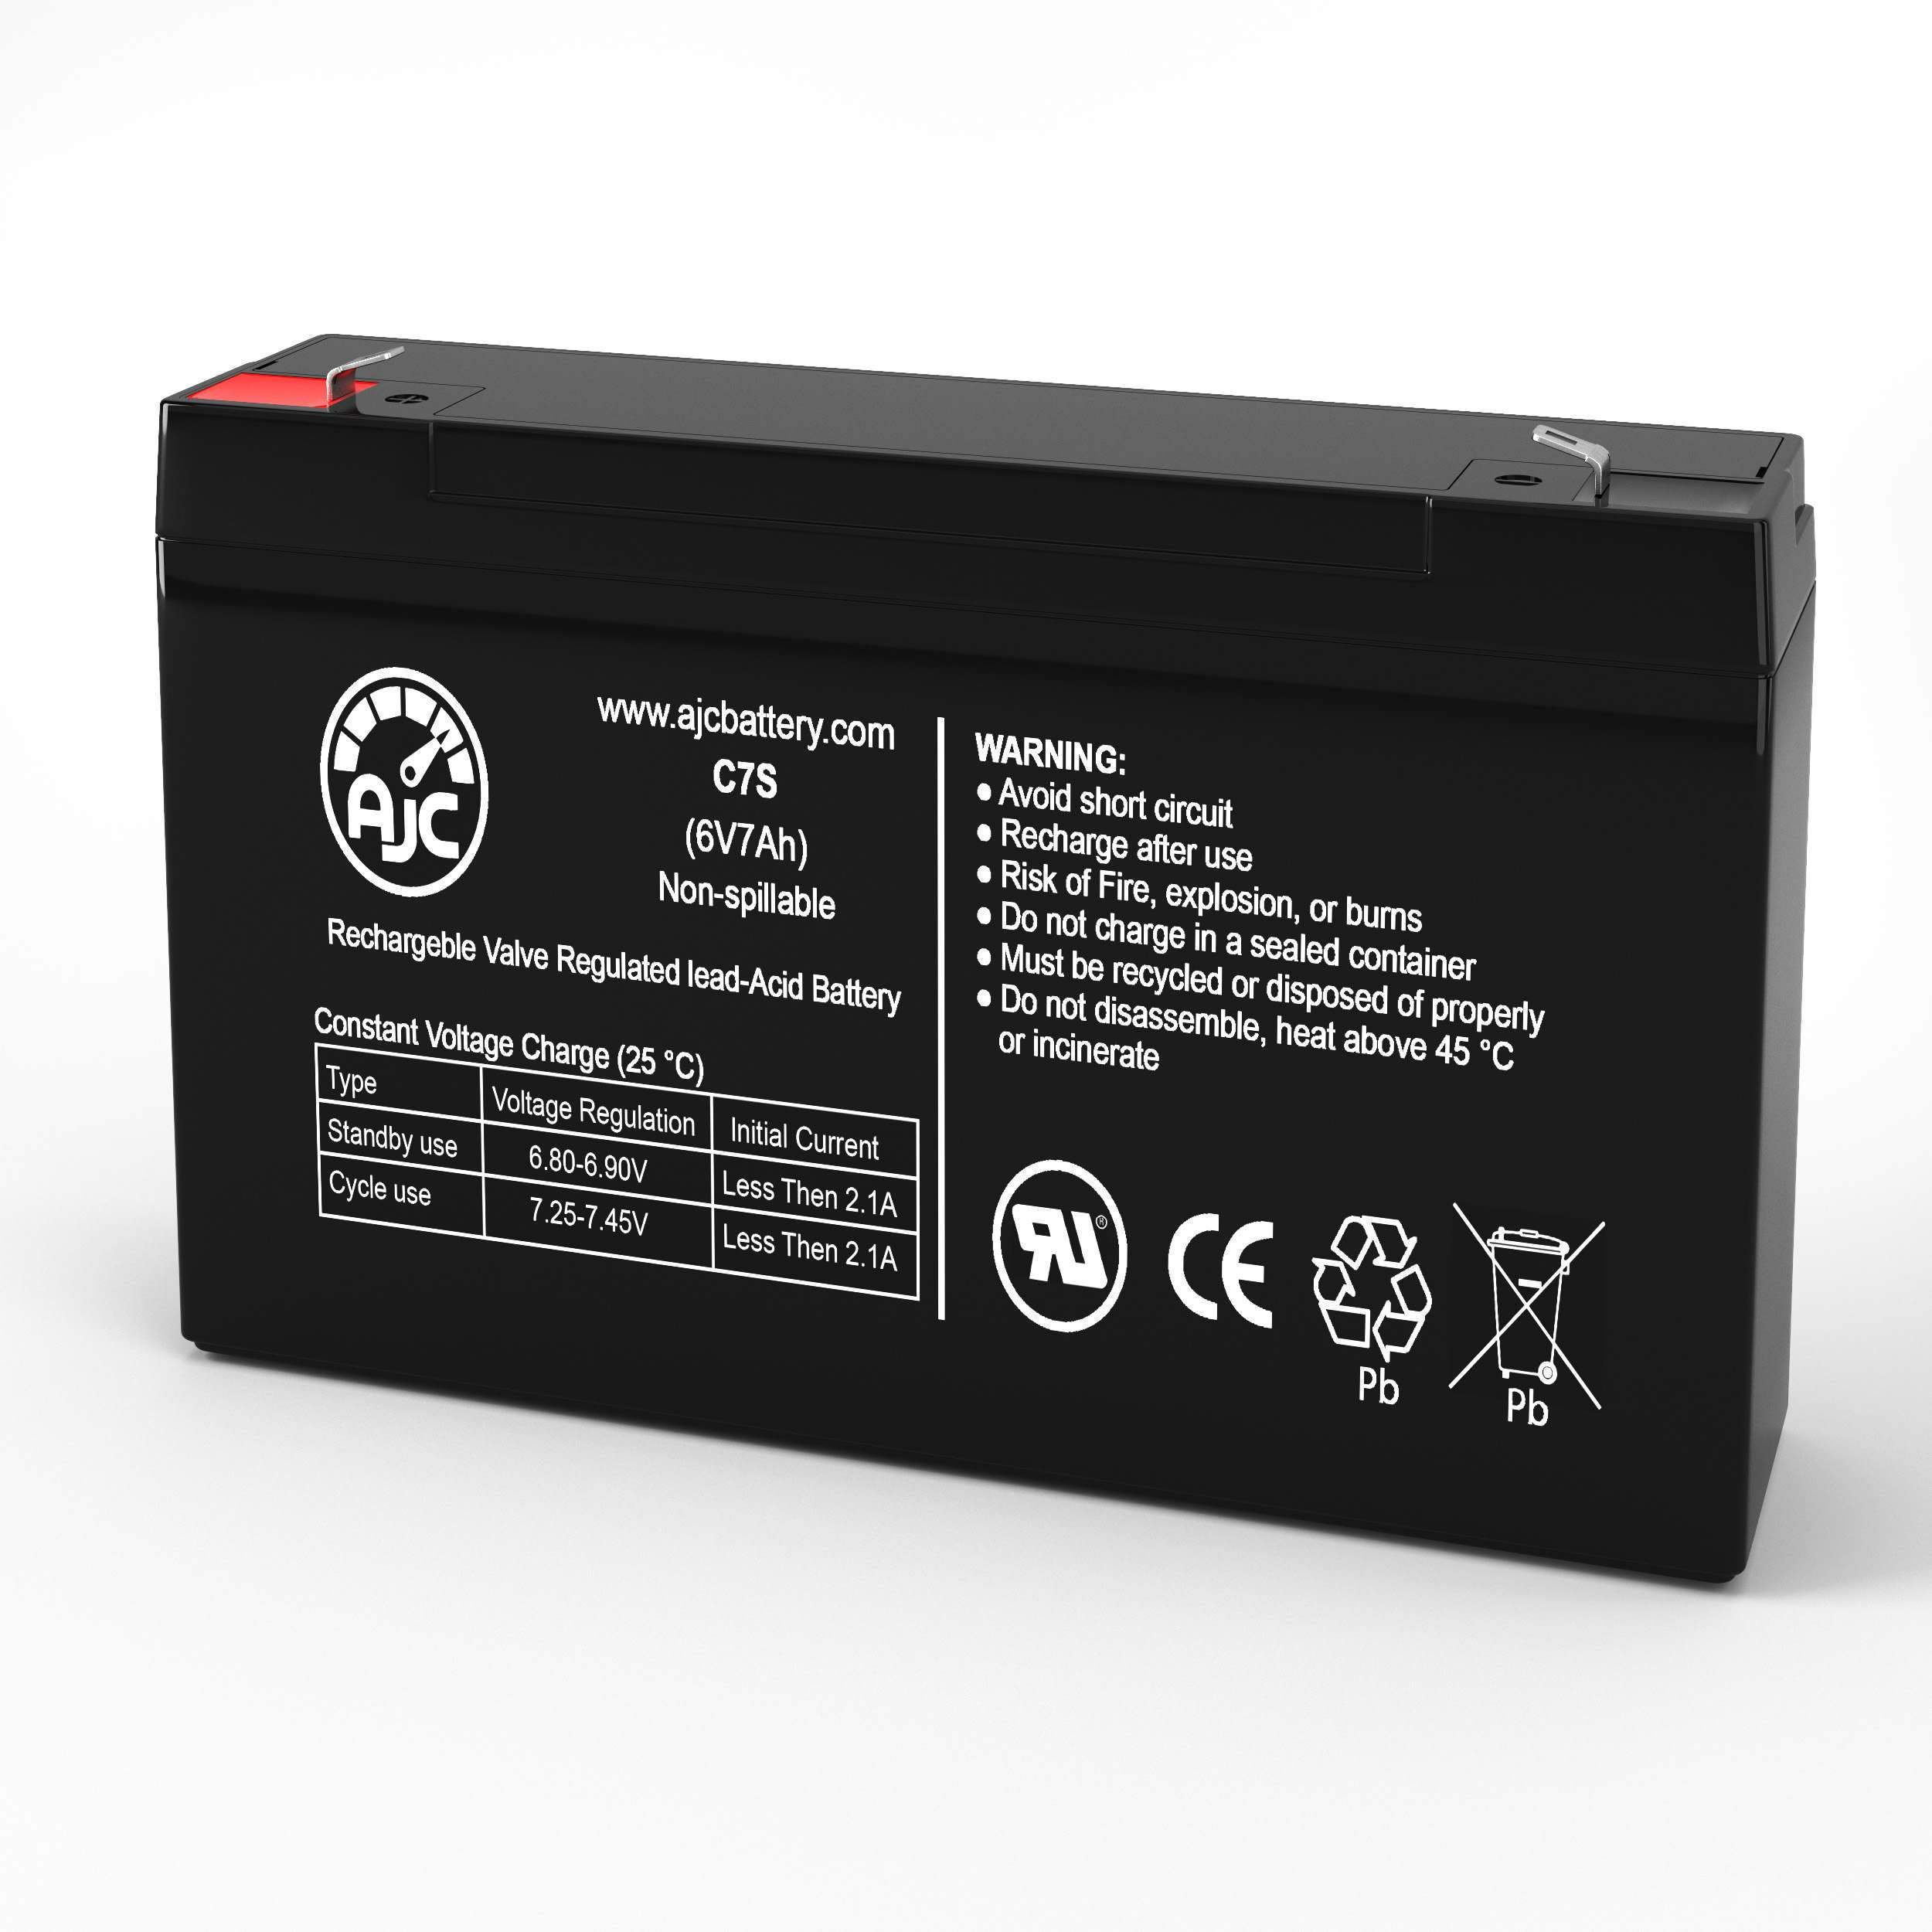 Long Way LW-3FM7 6V 7Ah Sealed Lead Acid Battery - This is an AJC Brand Replacement